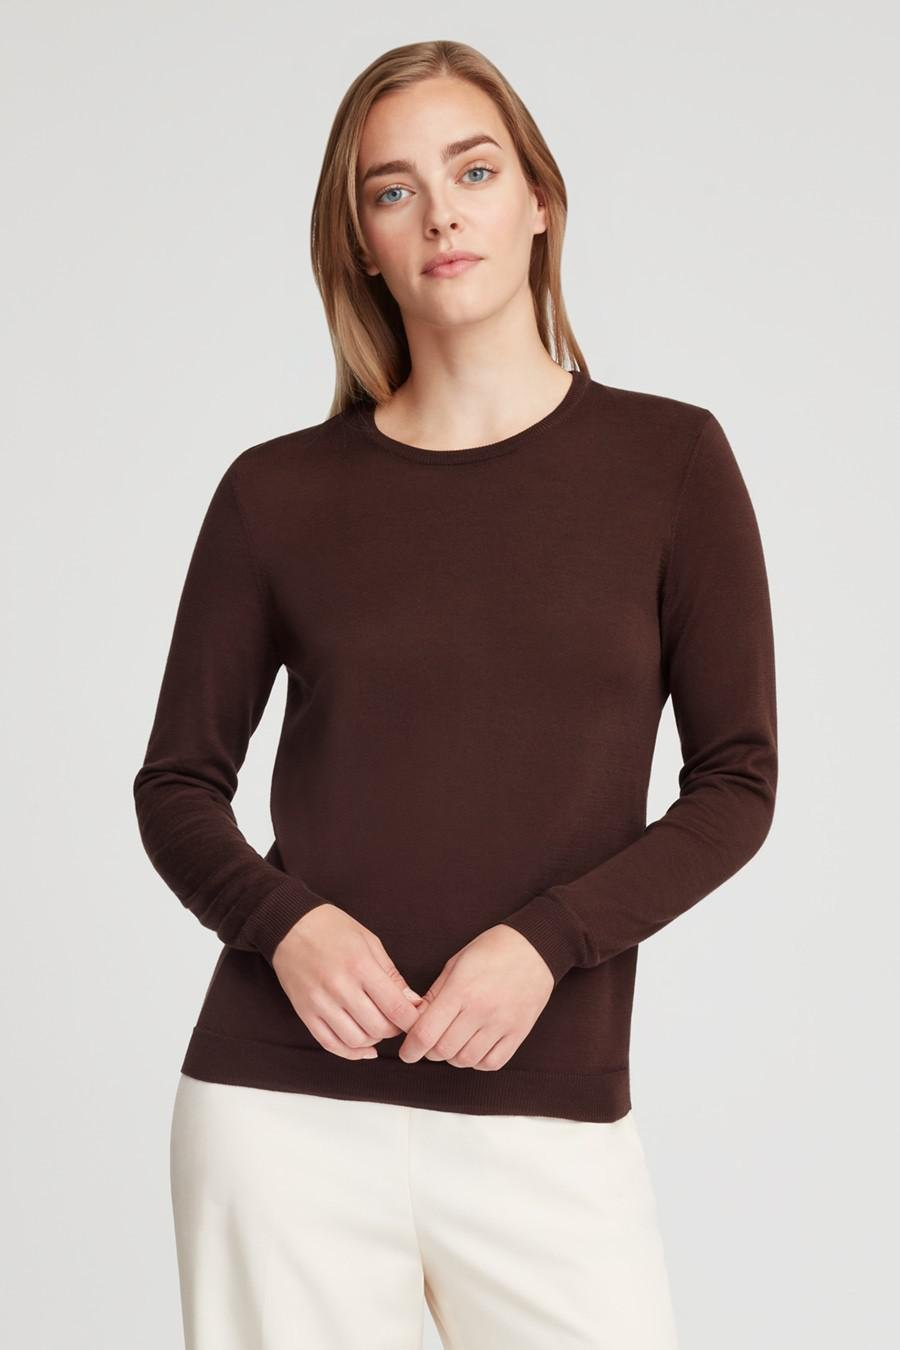 Women's Classic Cotton Cashmere Crewneck Sweater in Chocolate | Size: 1